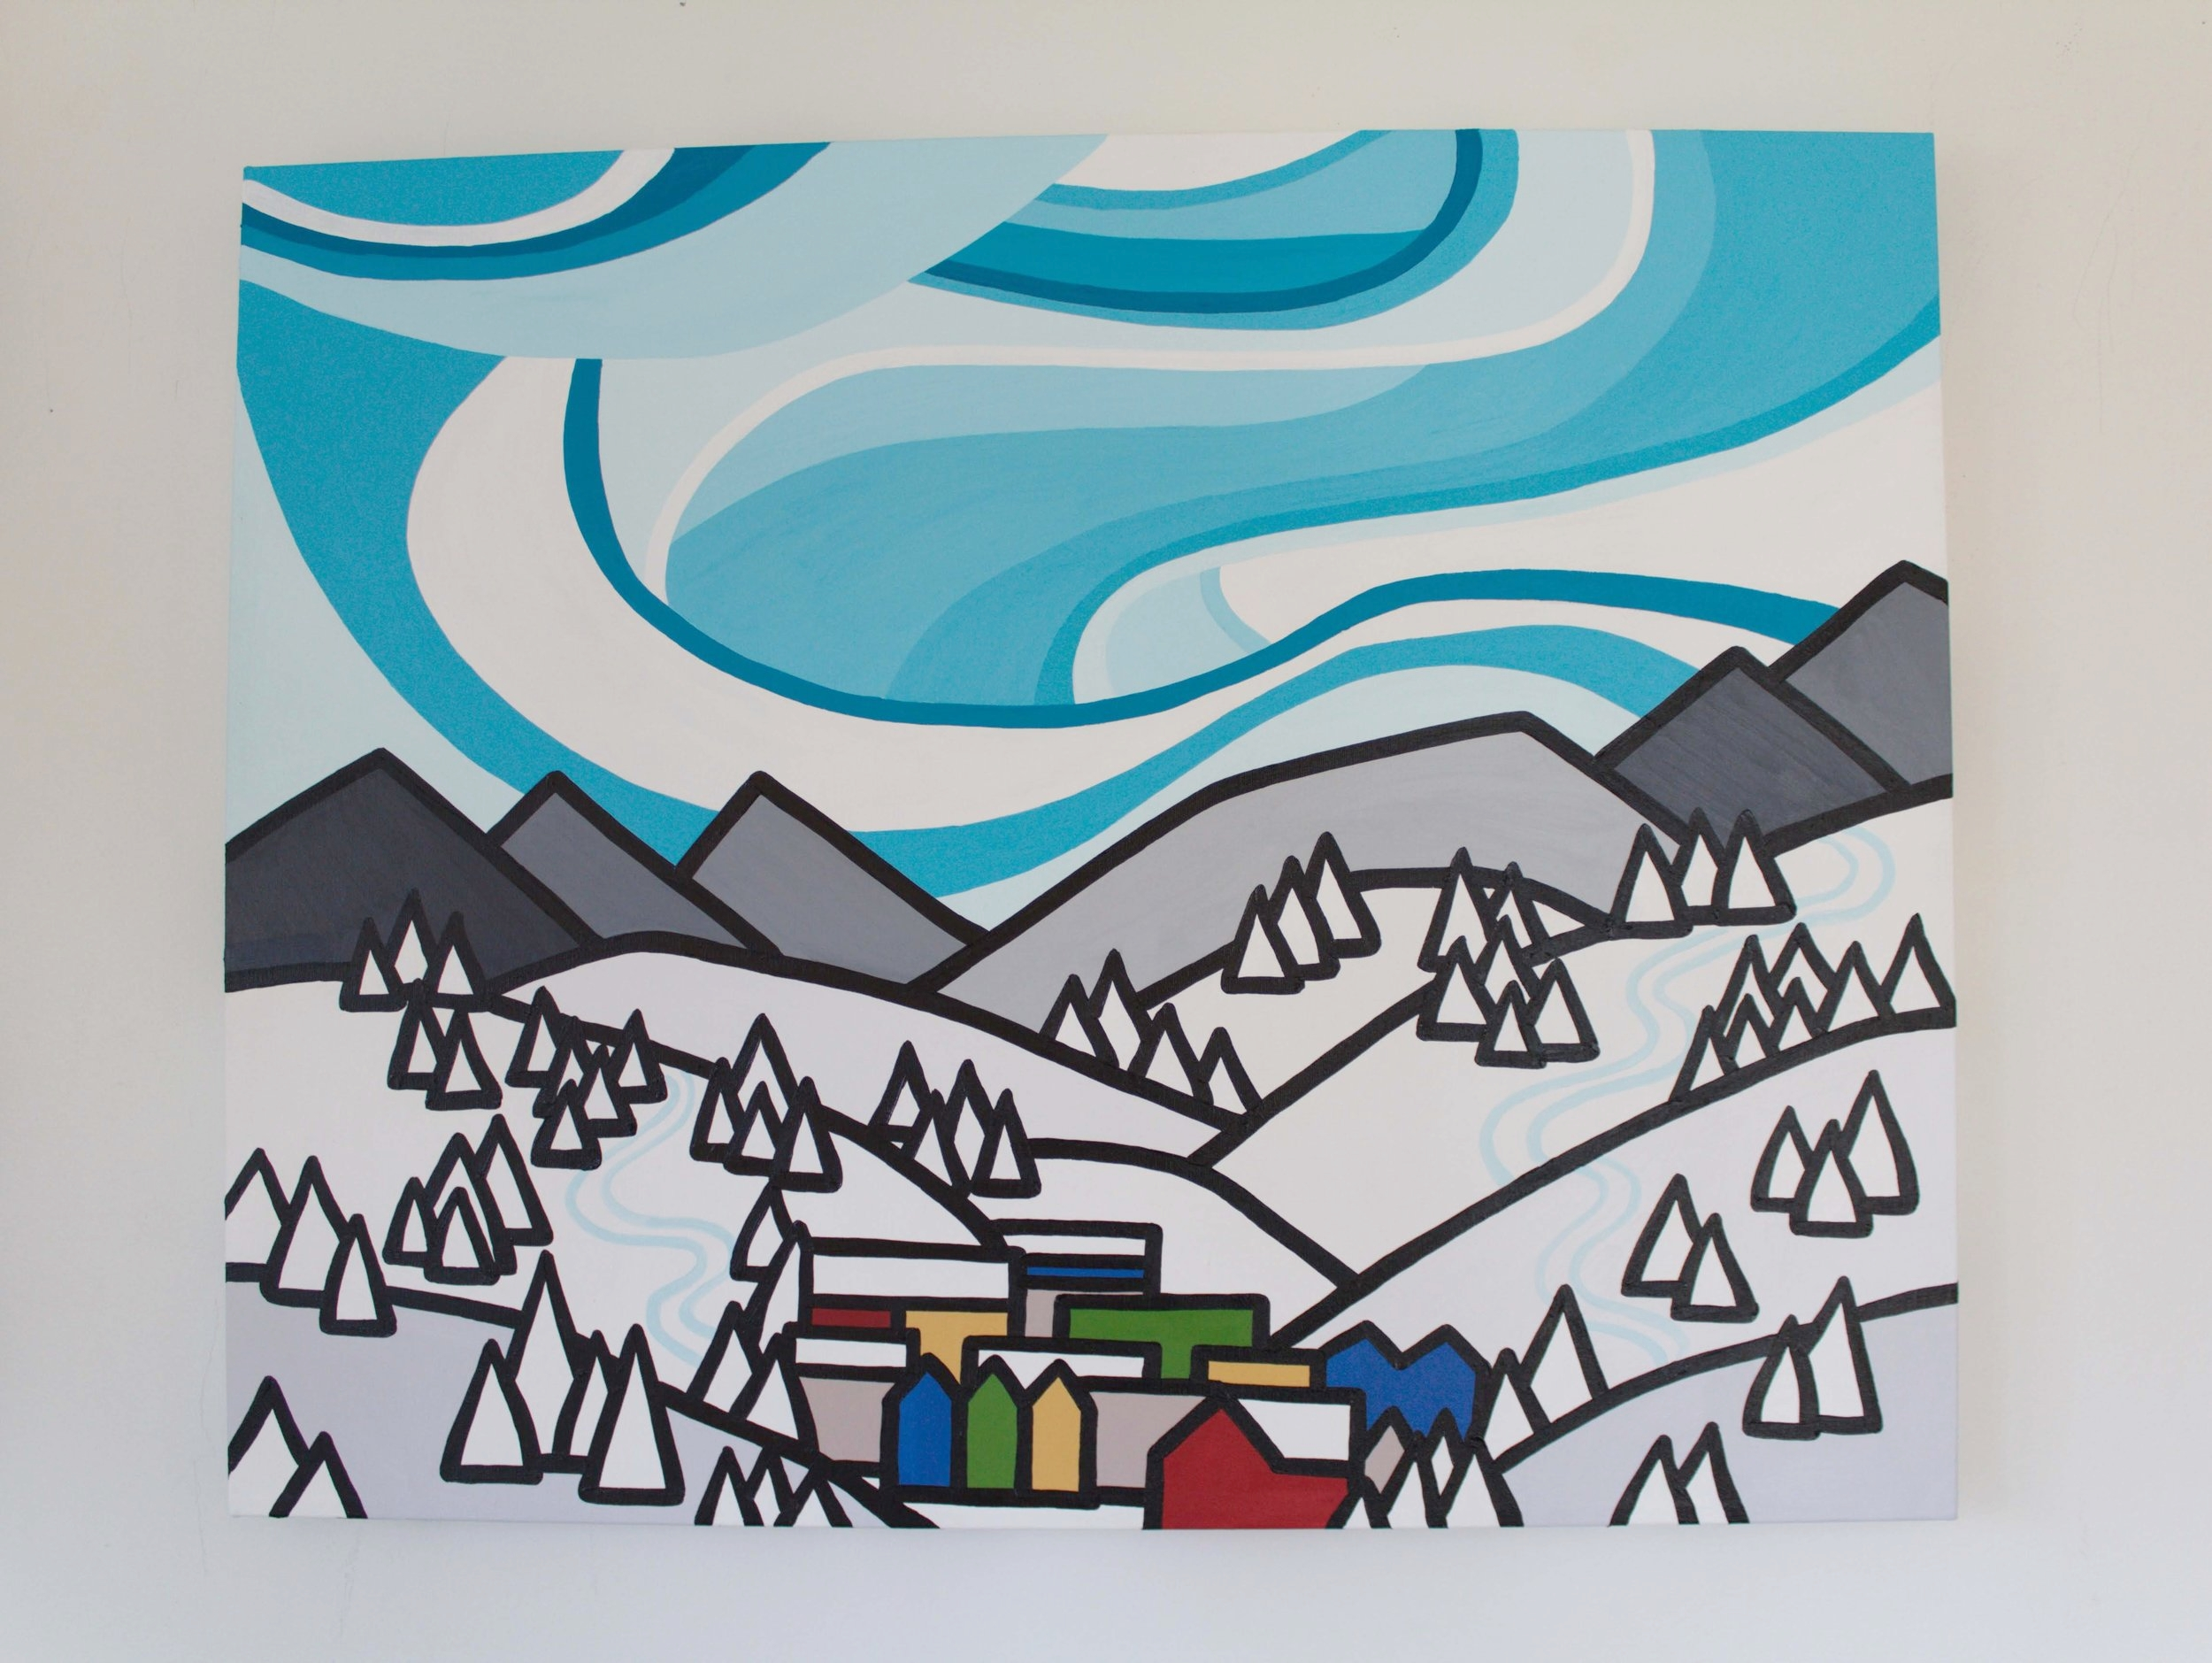 "Ski Town - Size: 24"" x 30"" acrylic on canvasPrice: SOLD"